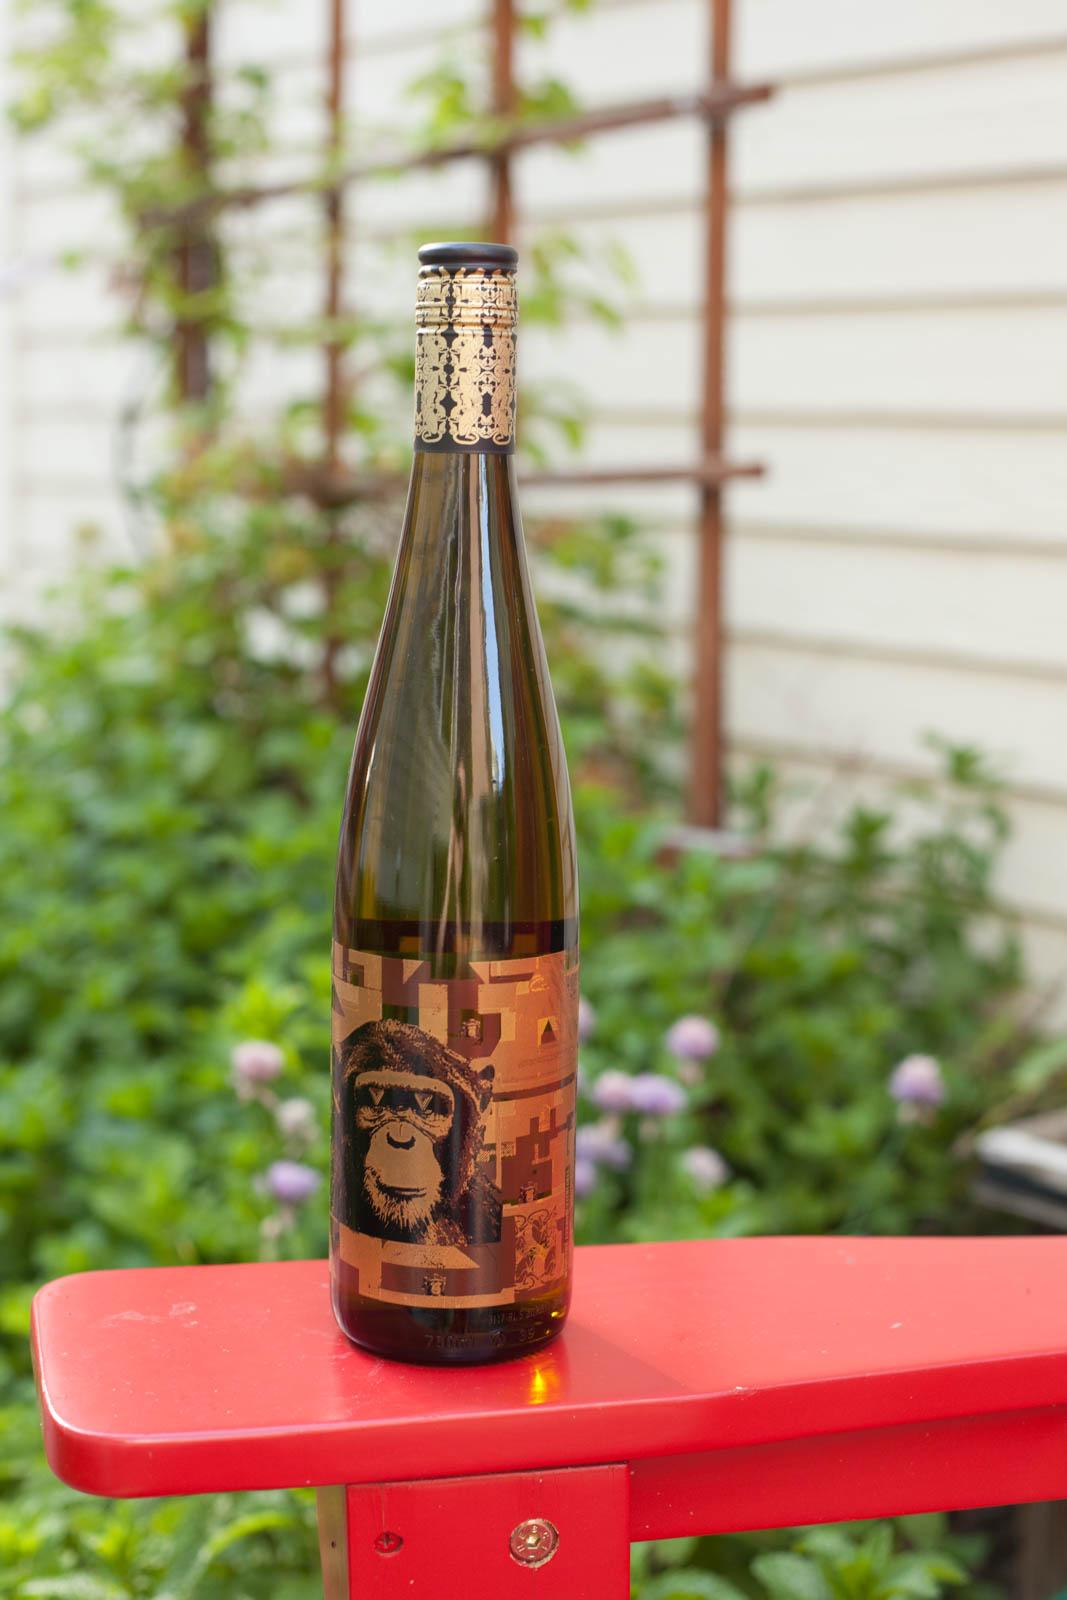 2013 Infinite Monkey Theorem Riesling, Colorado wine